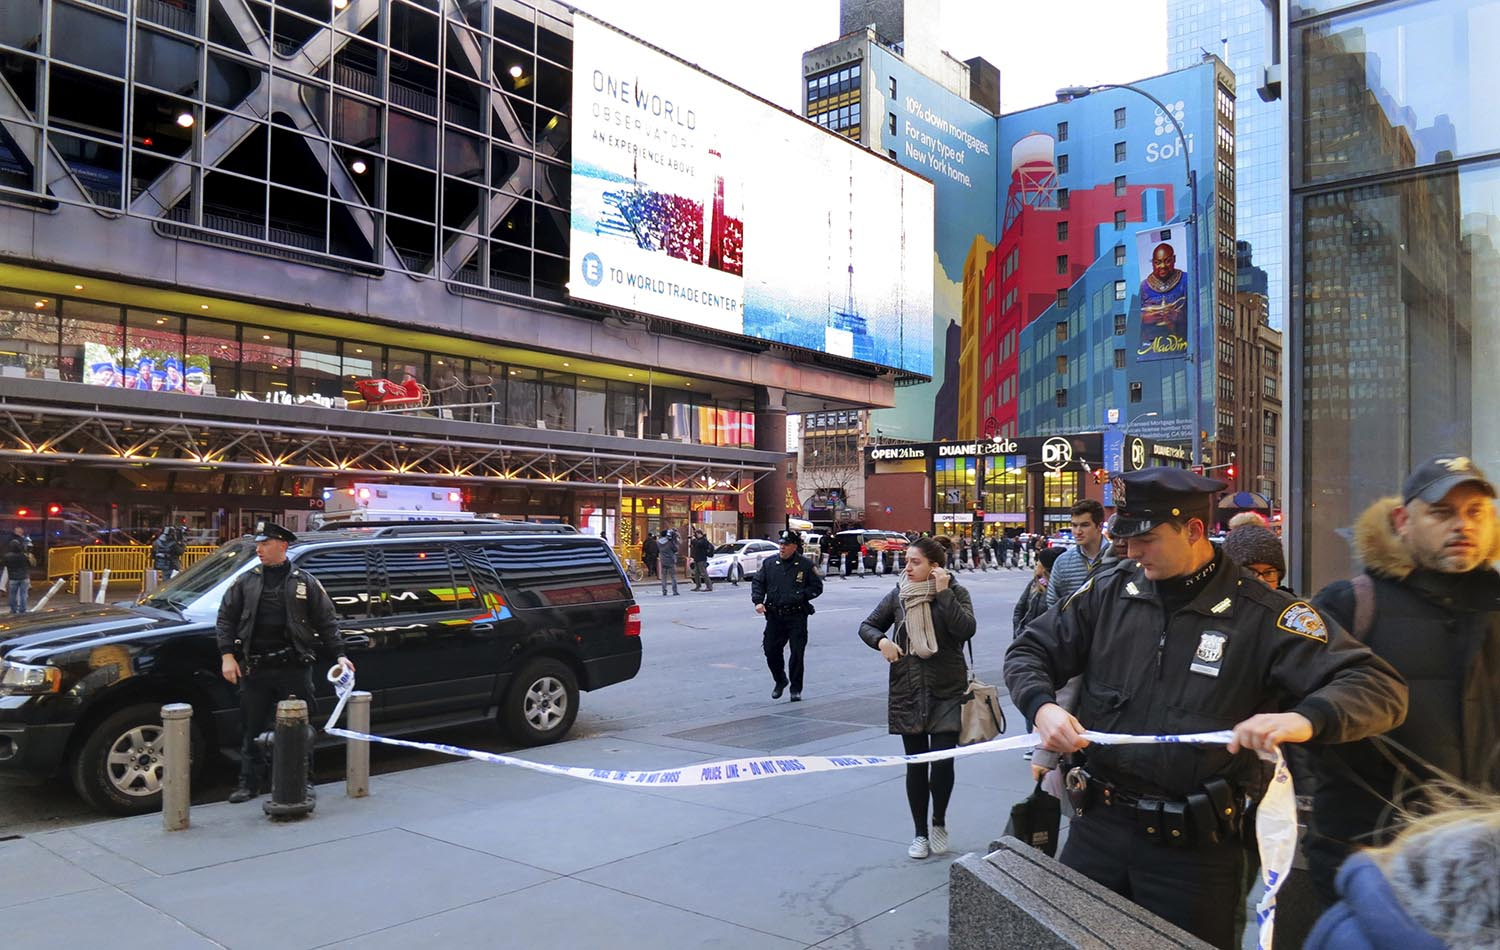 <div class='meta'><div class='origin-logo' data-origin='AP'></div><span class='caption-text' data-credit='AP Photo/Chuck Zoeller'>Police secure Eighth Avenue outside the Port Authority Bus Terminal following an explosion near New York's Times Square on Monday, Dec. 11, 2017.</span></div>